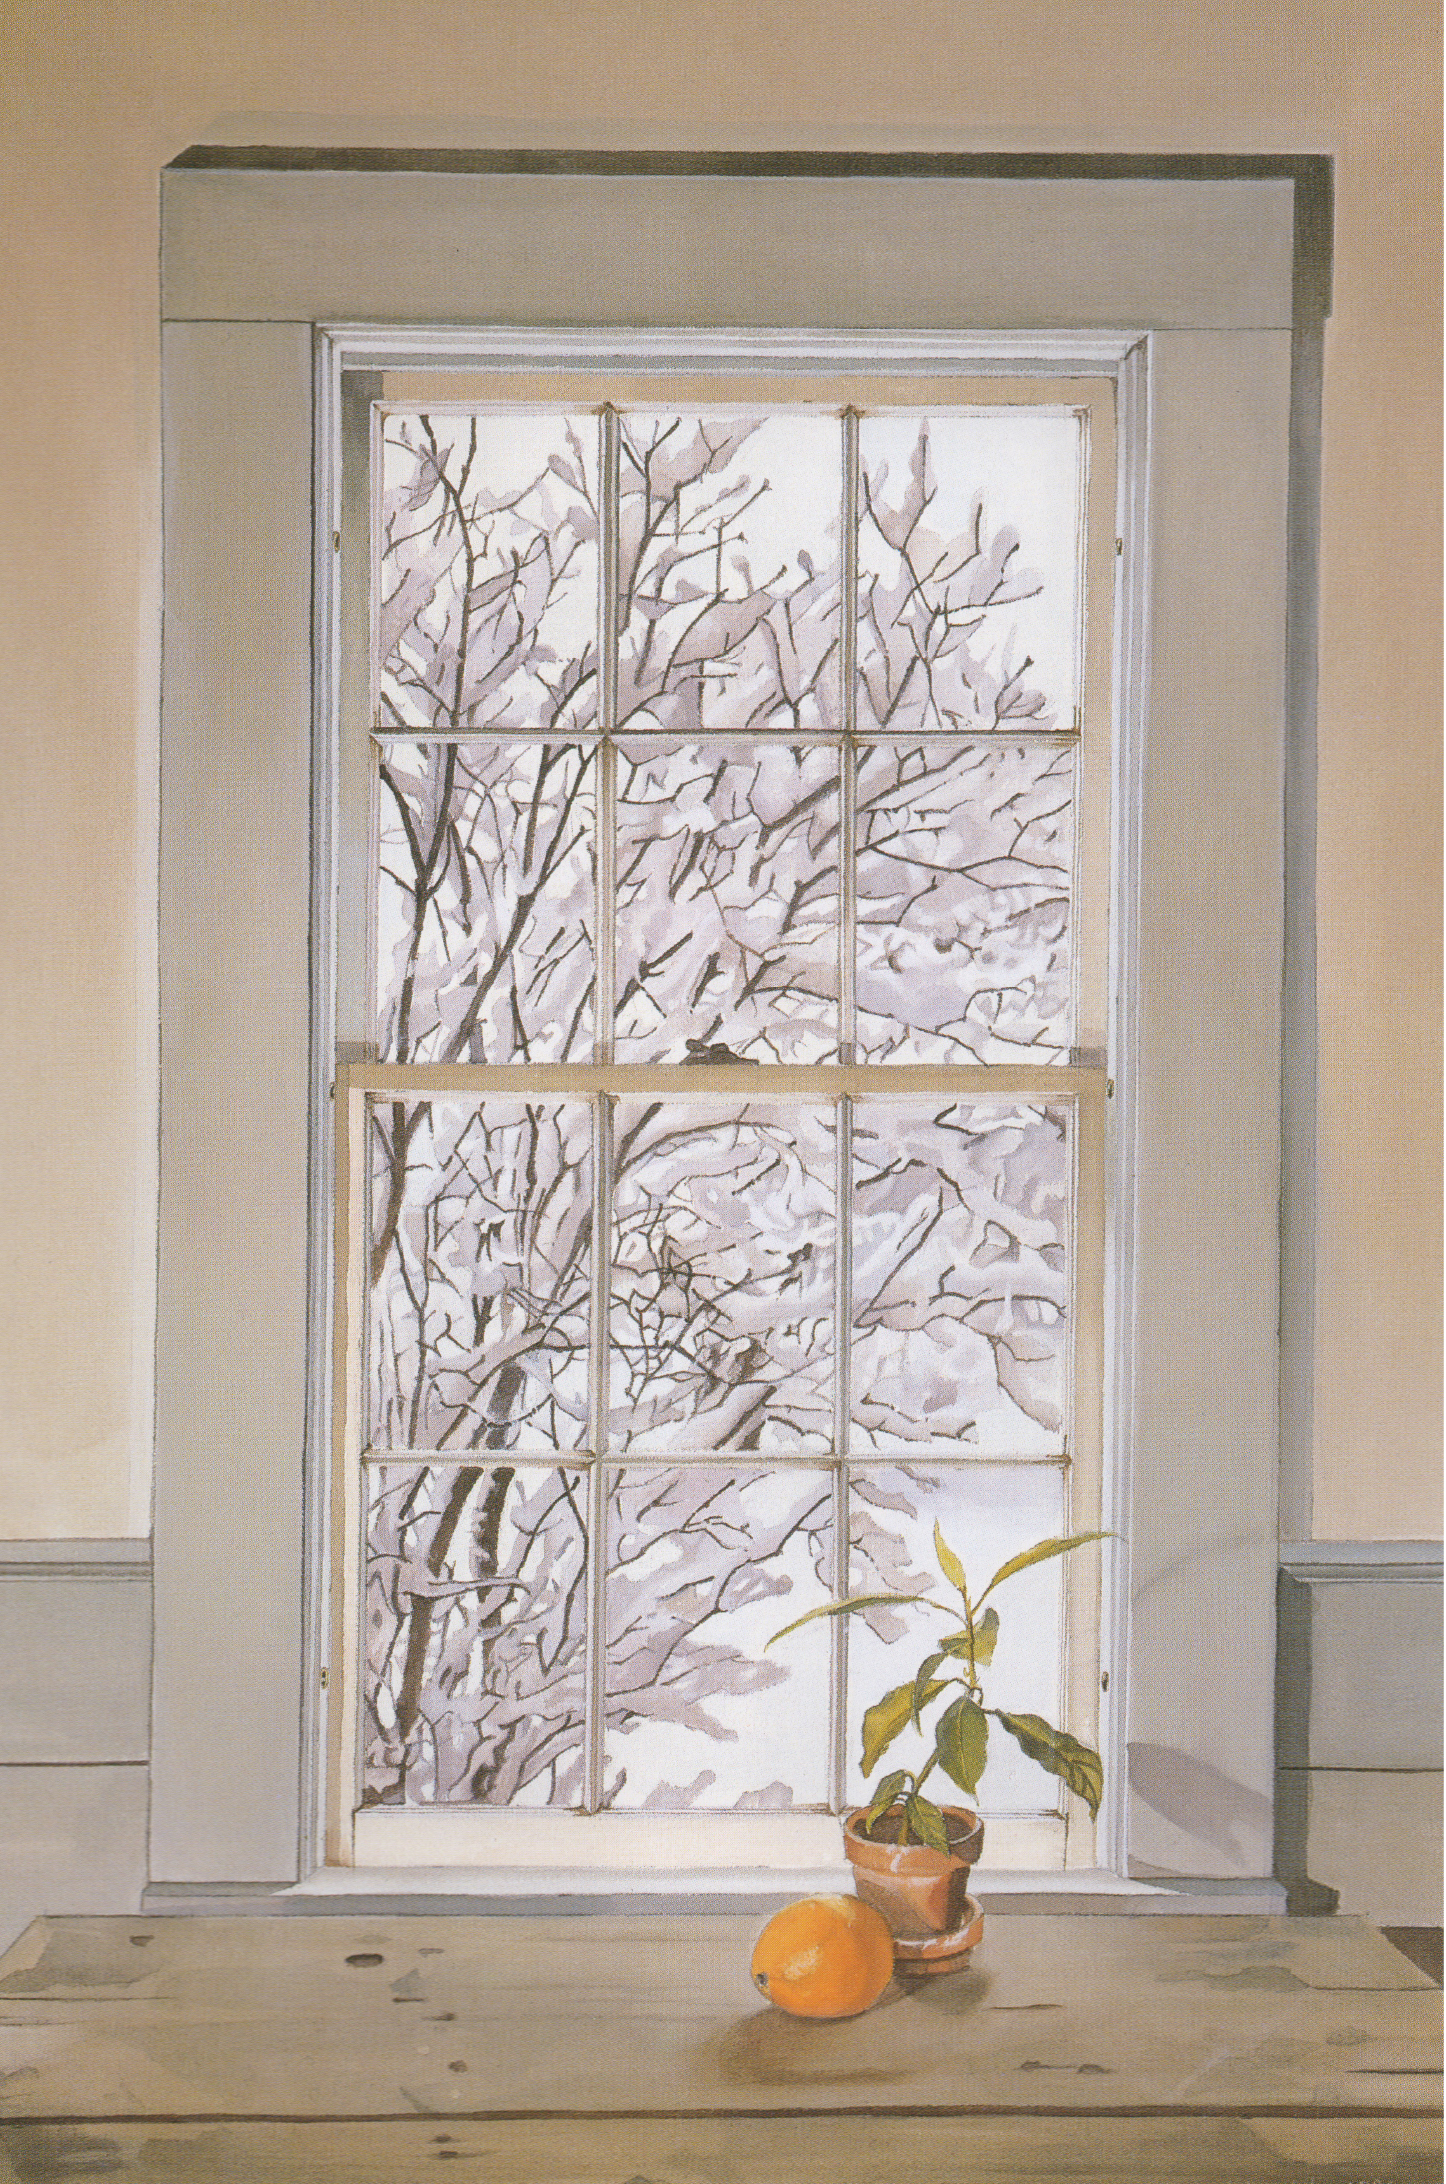 Kitchen Window in Winter